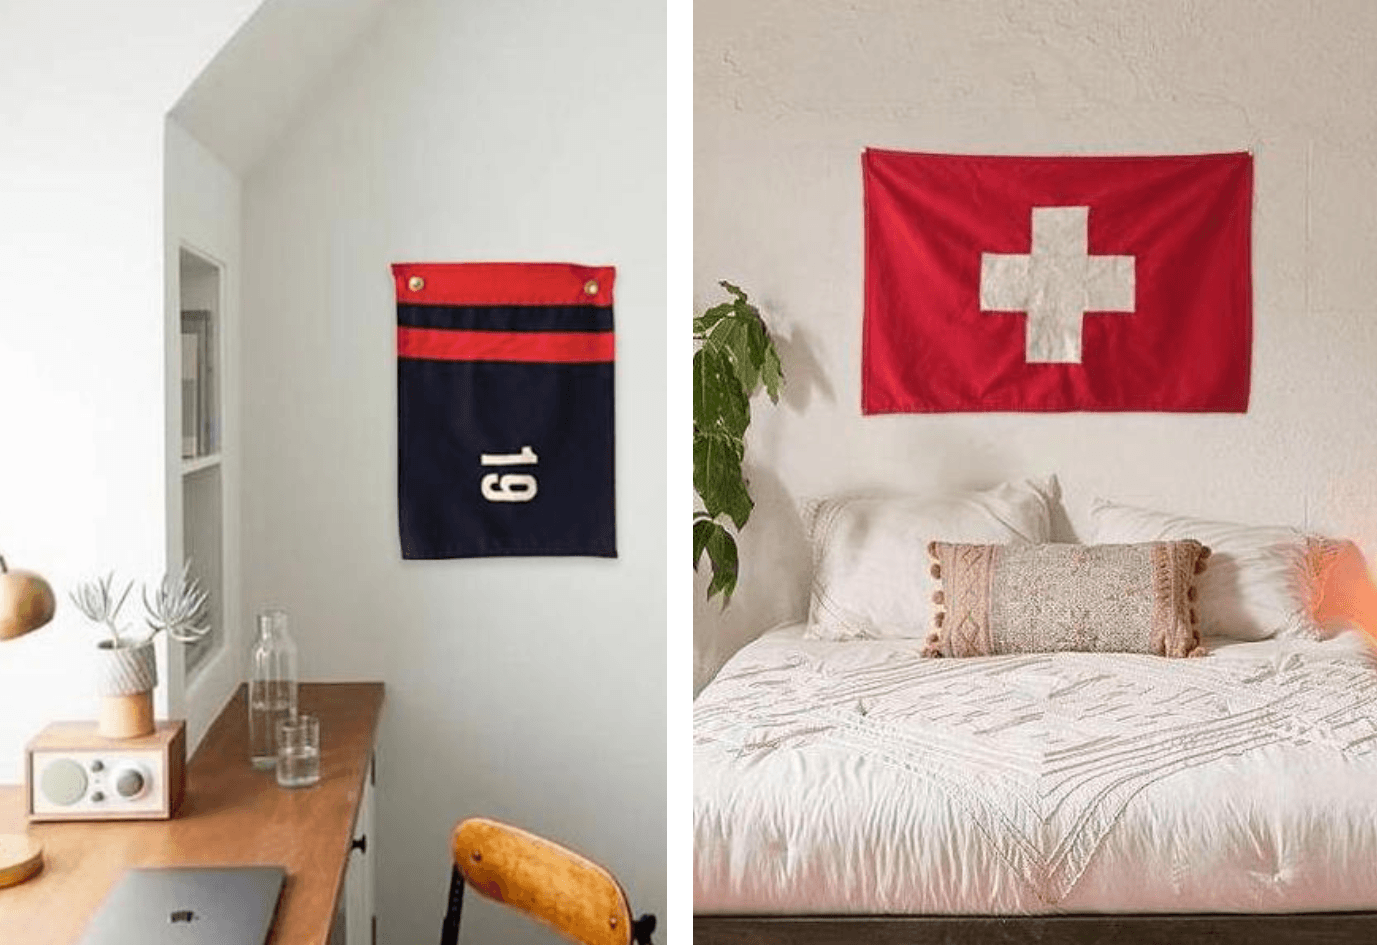 Above L: The Cabana Flag from Lost & Found Flag Co. is $90. Above R: The Swiss Ensign Flag from Lost & Found Flag Co. is $0.